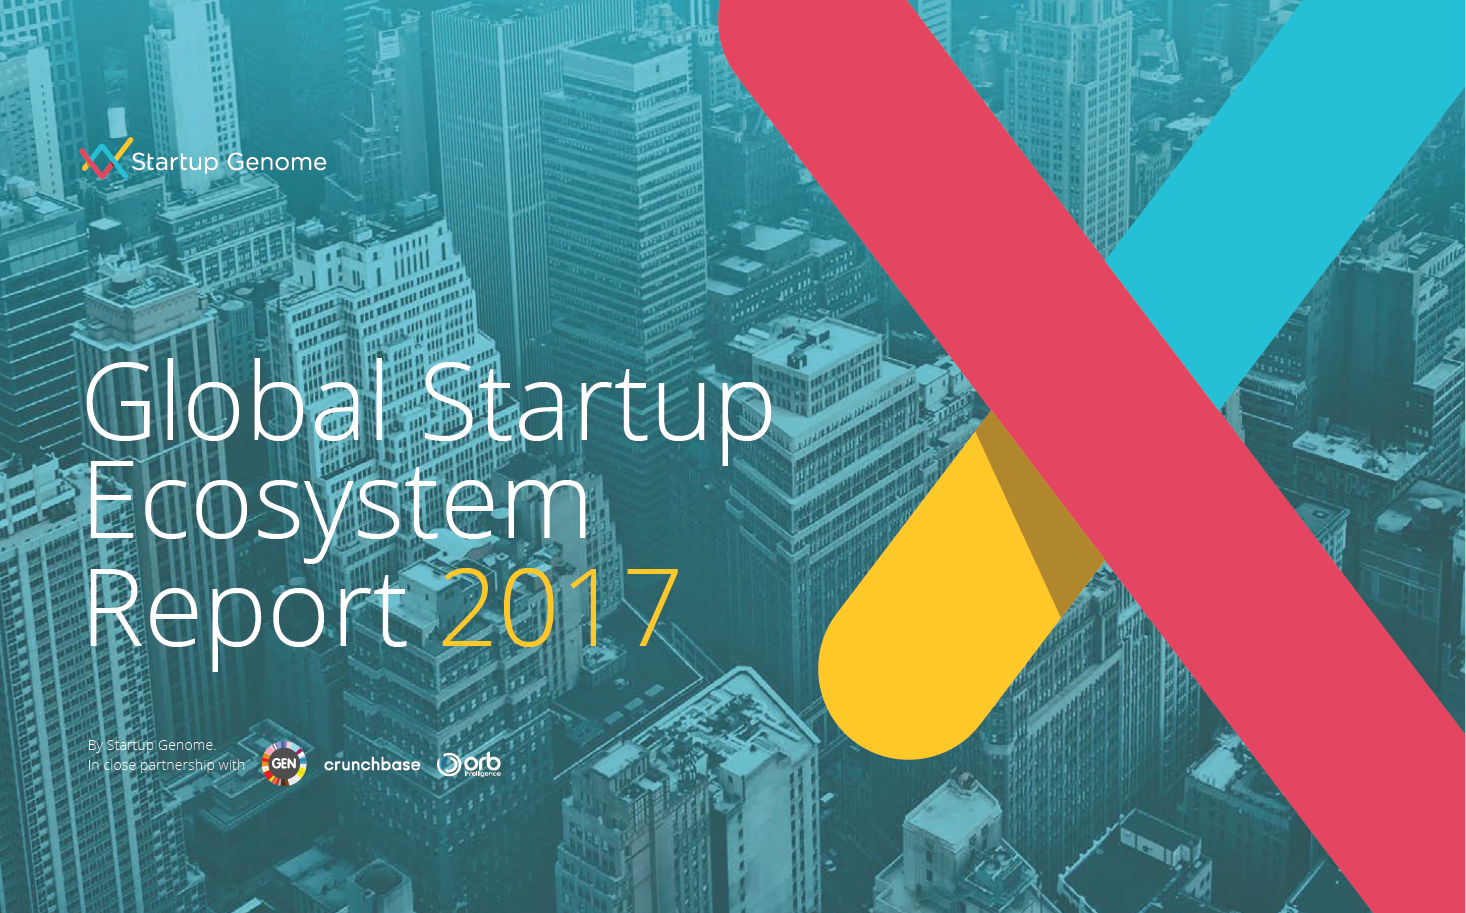 Global Startup Ecosystem Report 2017